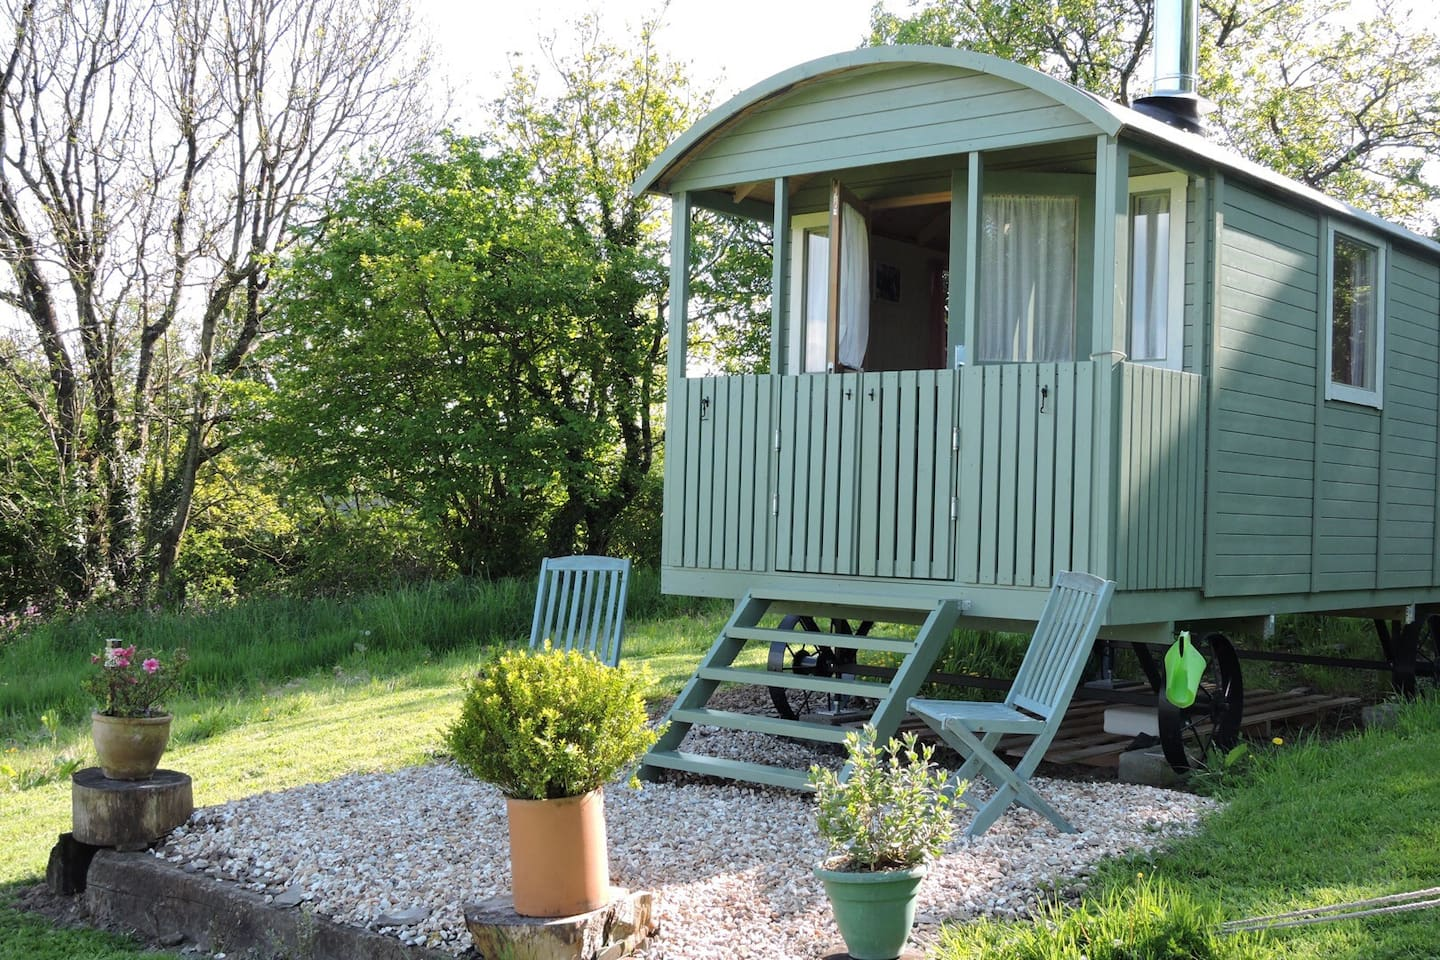 Shepherds hut on a lovely sunny afternoon !